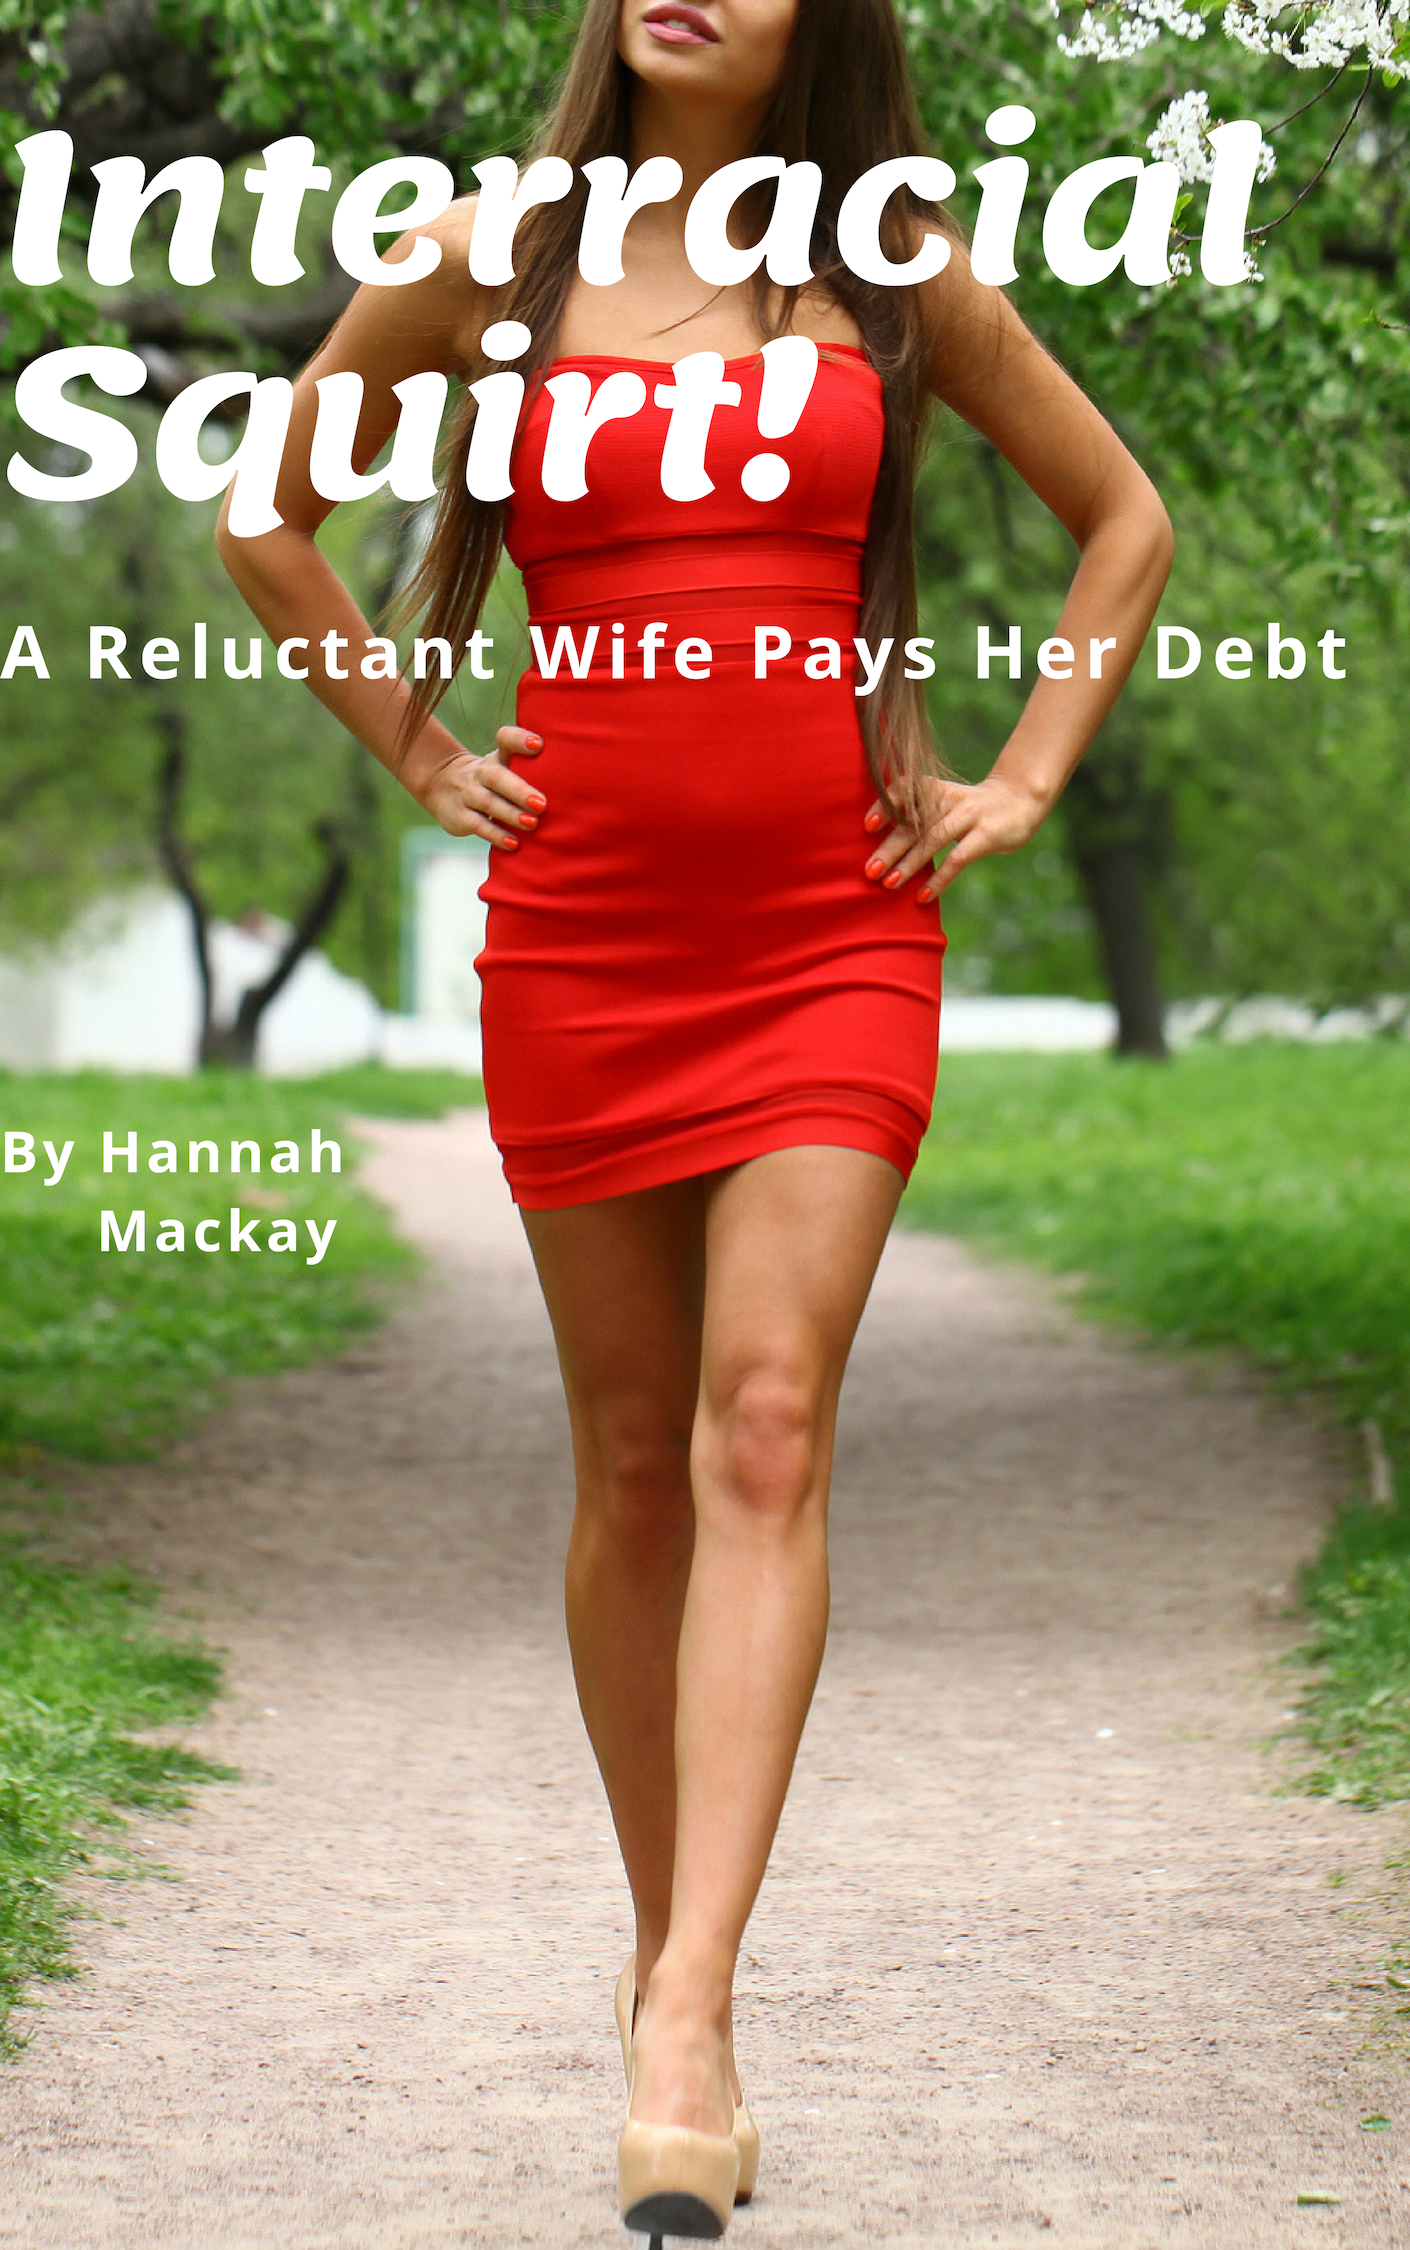 Smashwords - Interracial Squirt! A Reluctant Wife Pays Her